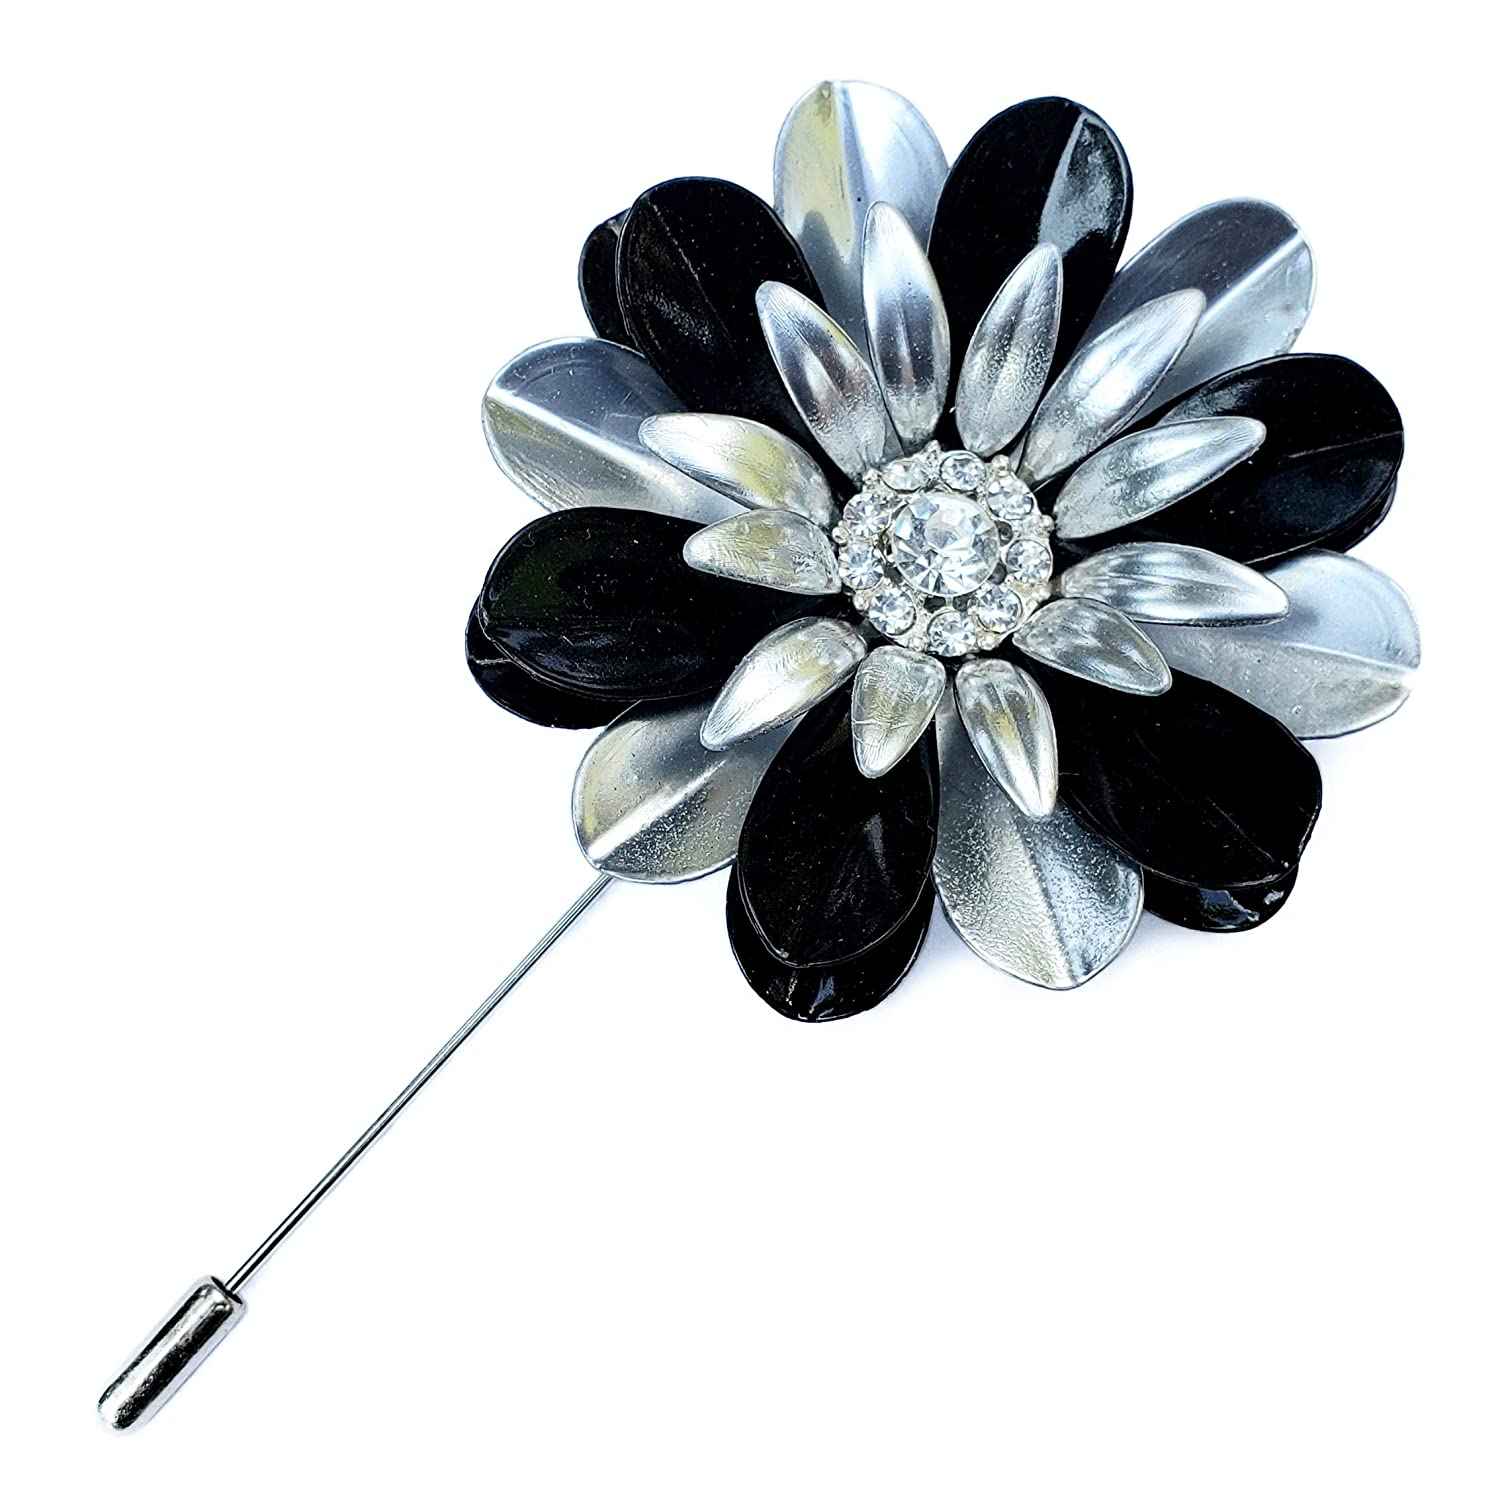 B015UV27RM Large Black and Silver Painted Metal Flower Lapel Pin 81cx7YcbIuL